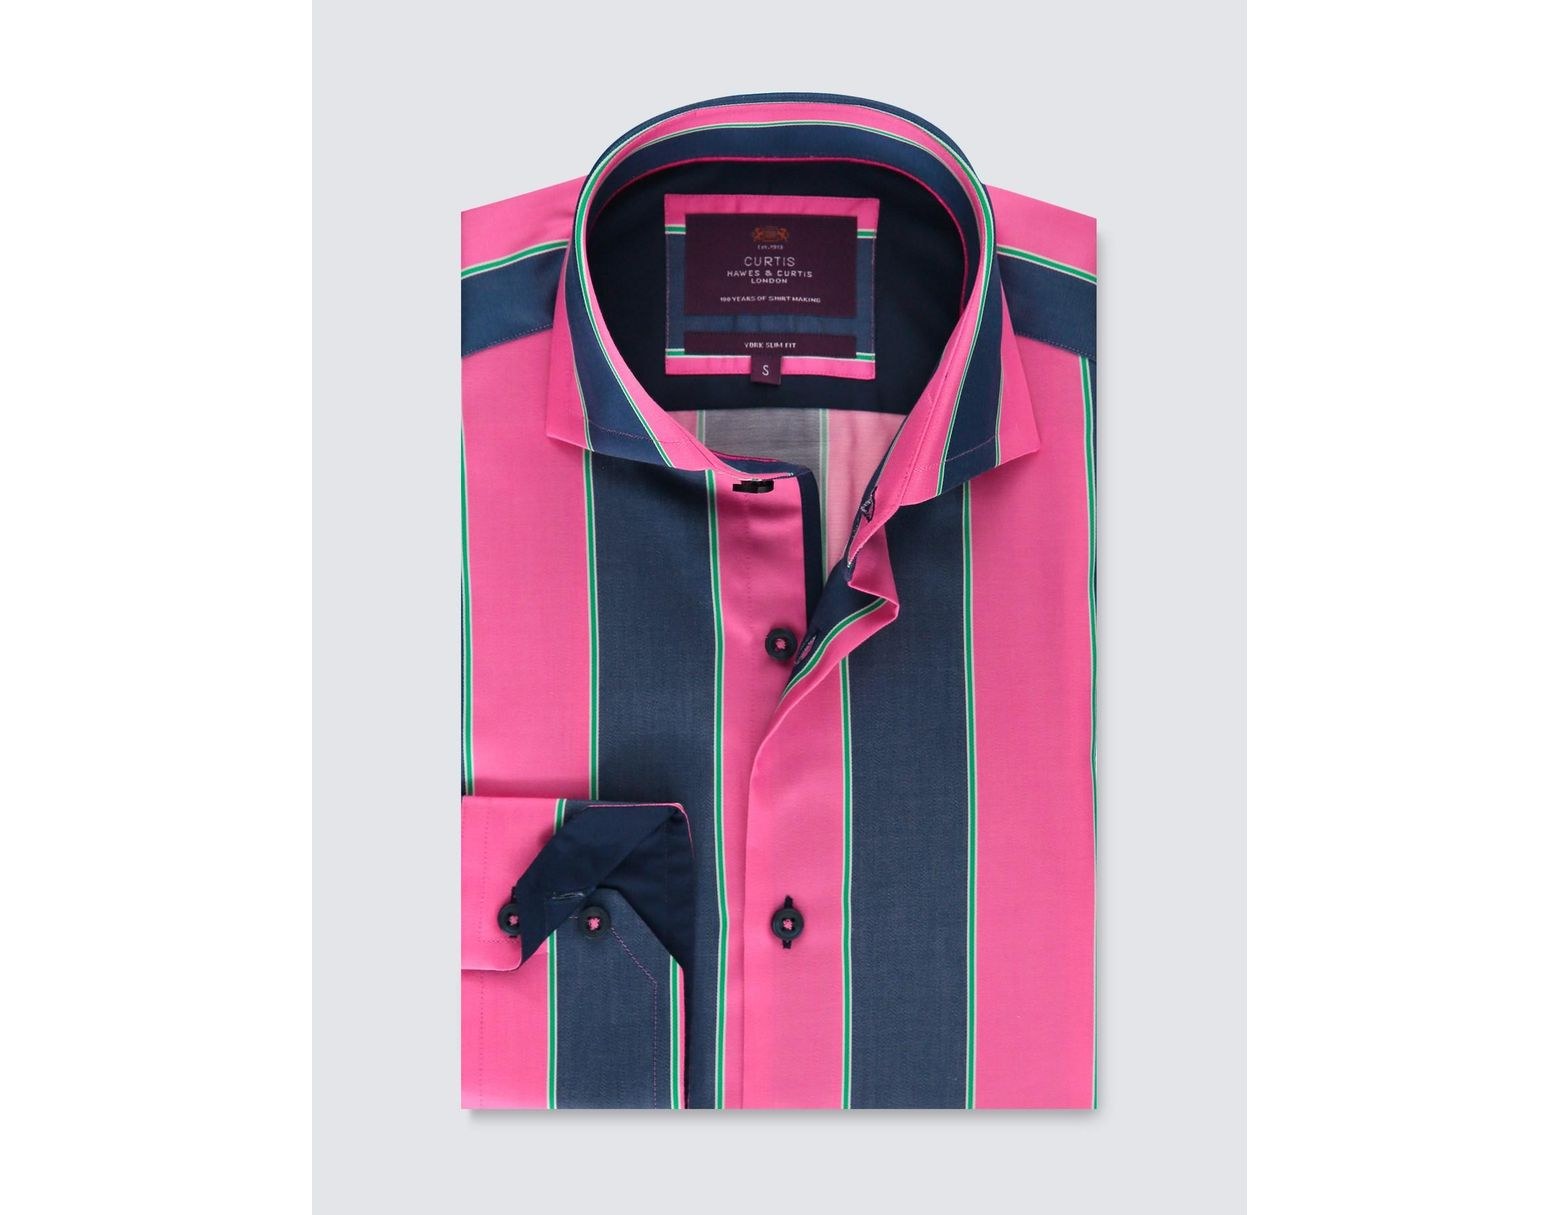 d0aad4a636 Lyst - Hawes & Curtis Pink & Blue Stripe Slim Fit Smart Casual Shirt in Pink  for Men